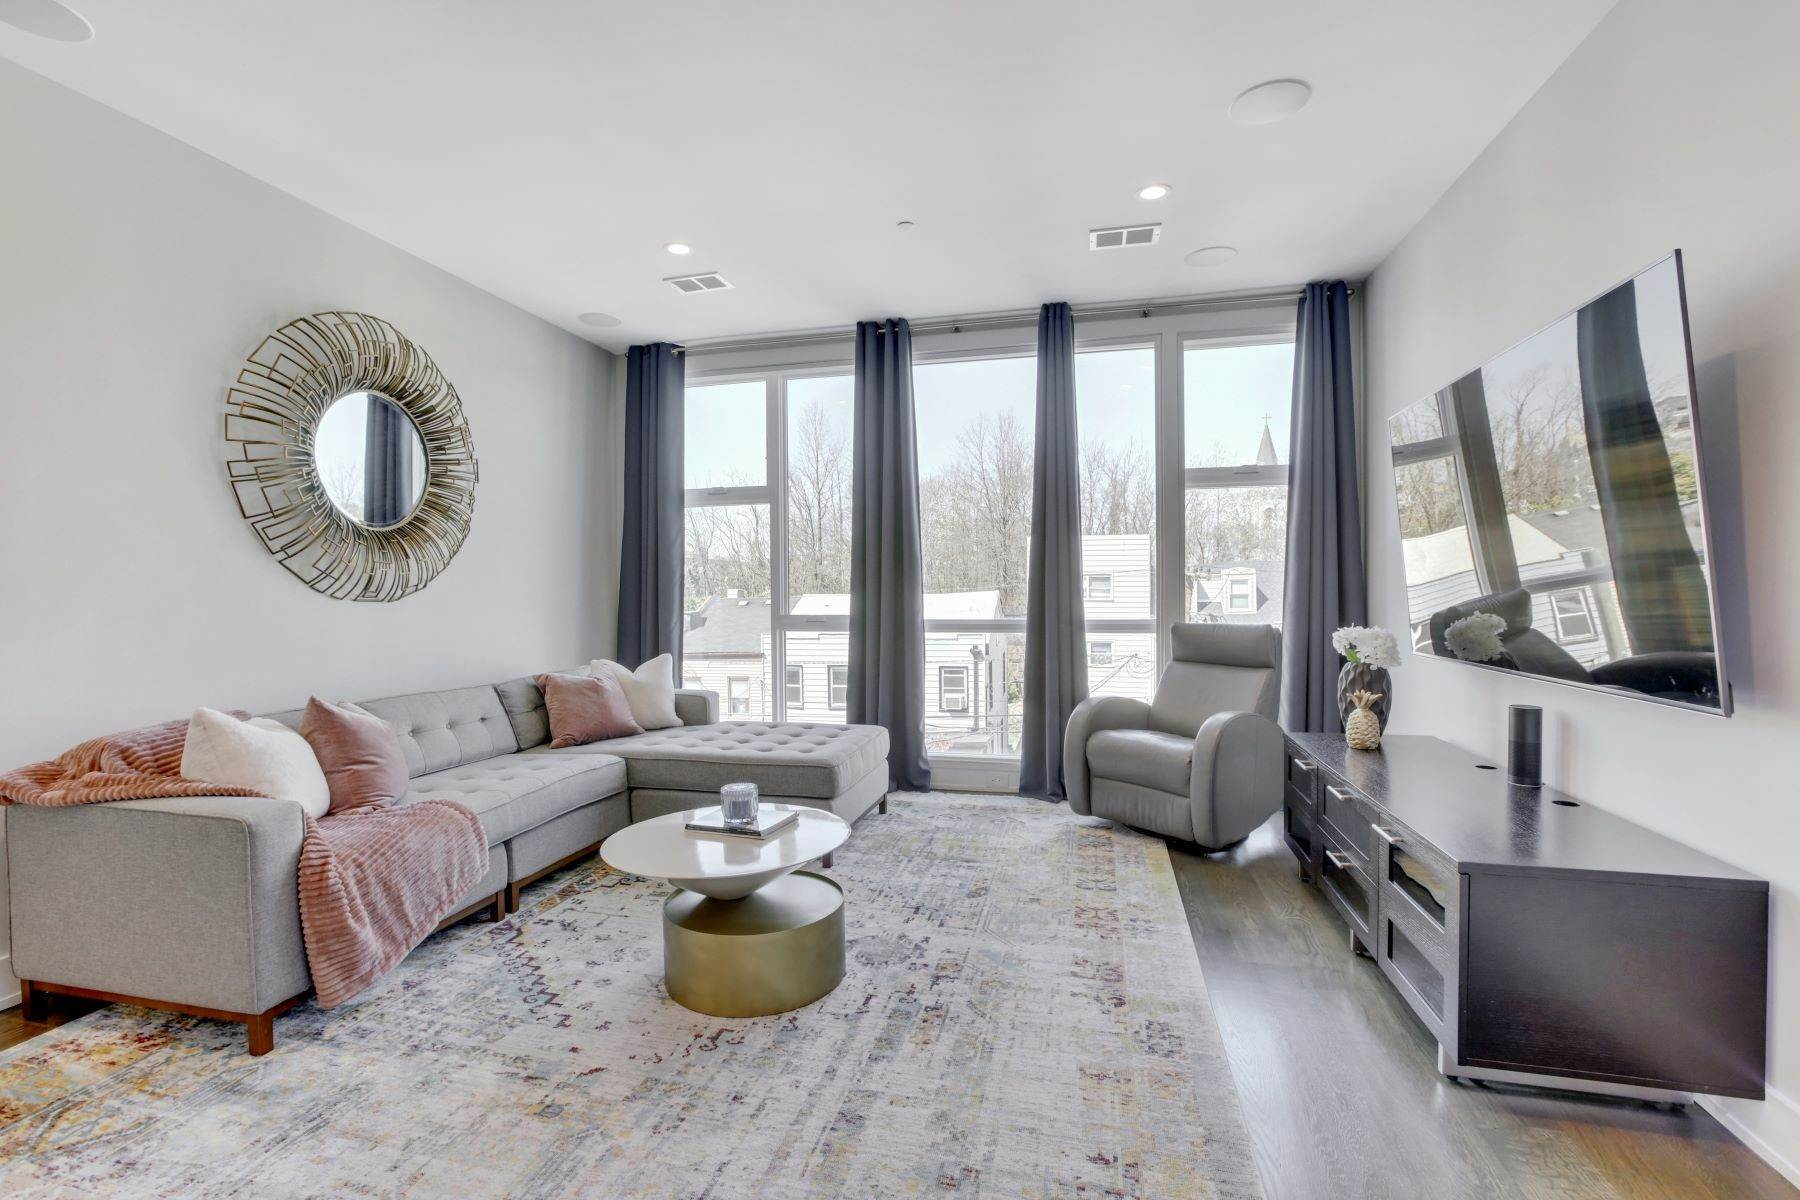 Condominiums for Sale at Welcome home to this stunning duplex loft. 359 5th Street, Unit 2, Jersey City, New Jersey 07302 United States